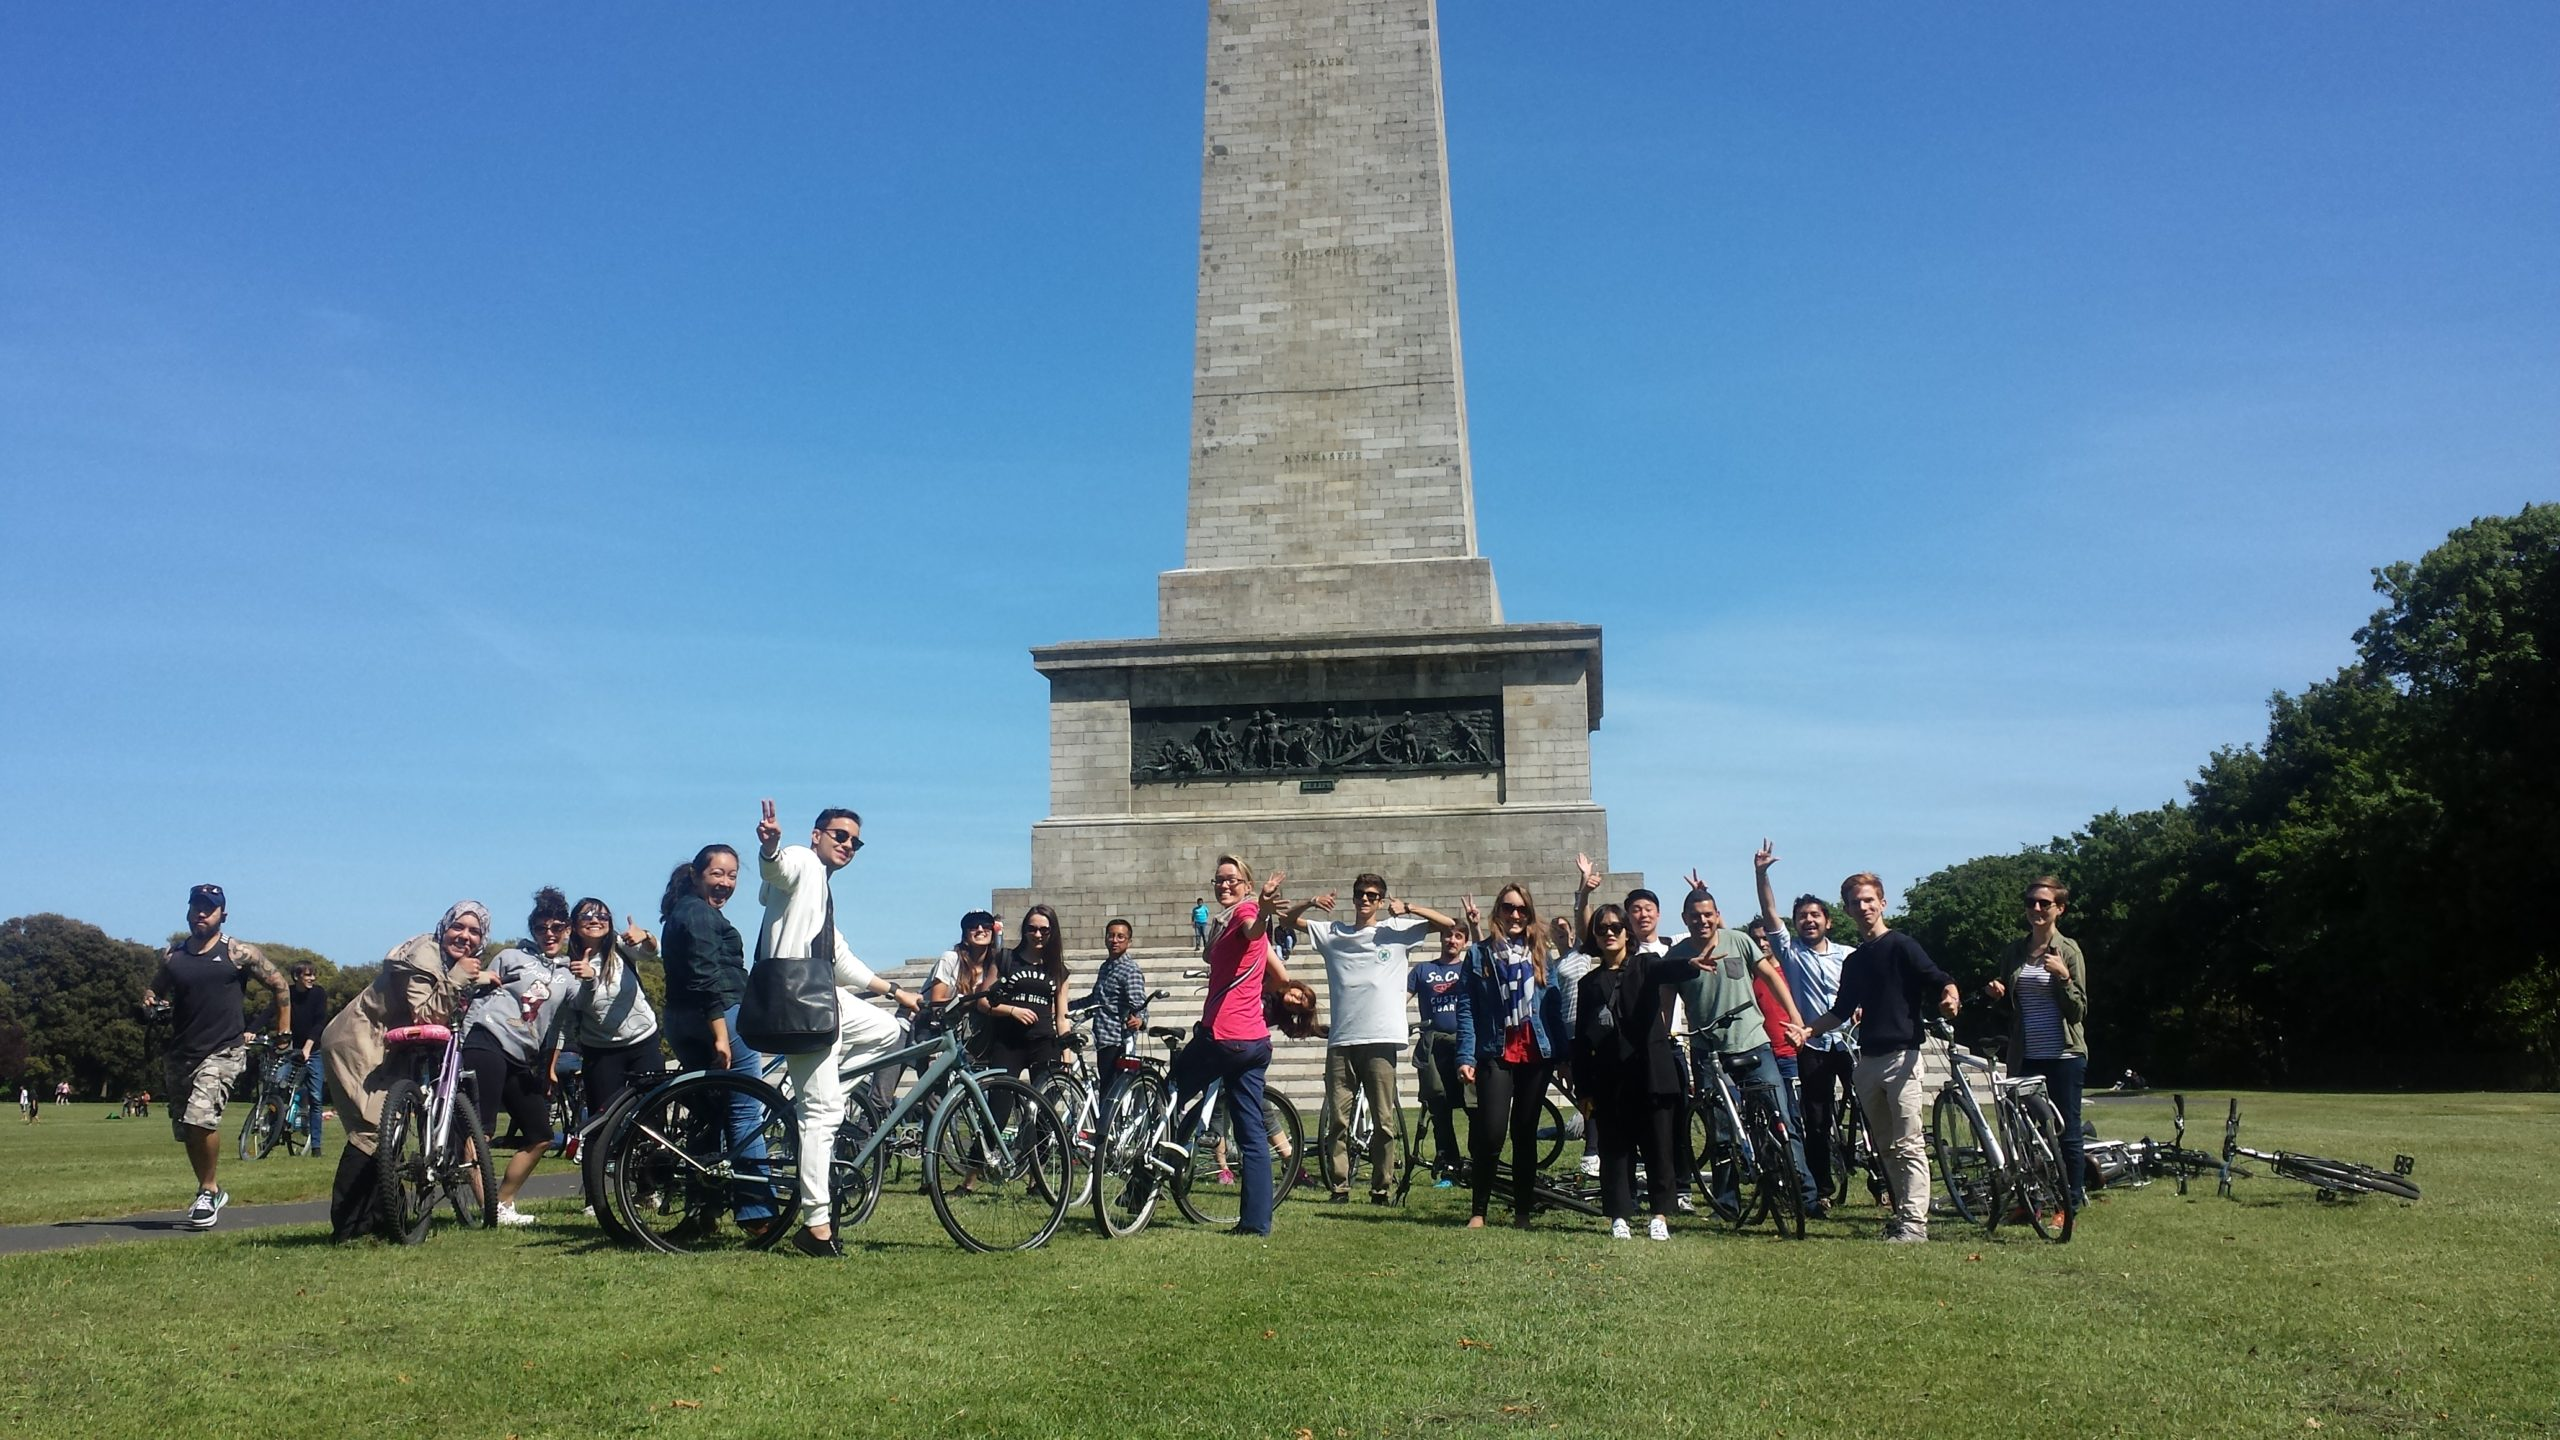 Atlas students at the Wellington Monument in the Phoenix Park - no need to rent a bike if you have one already!